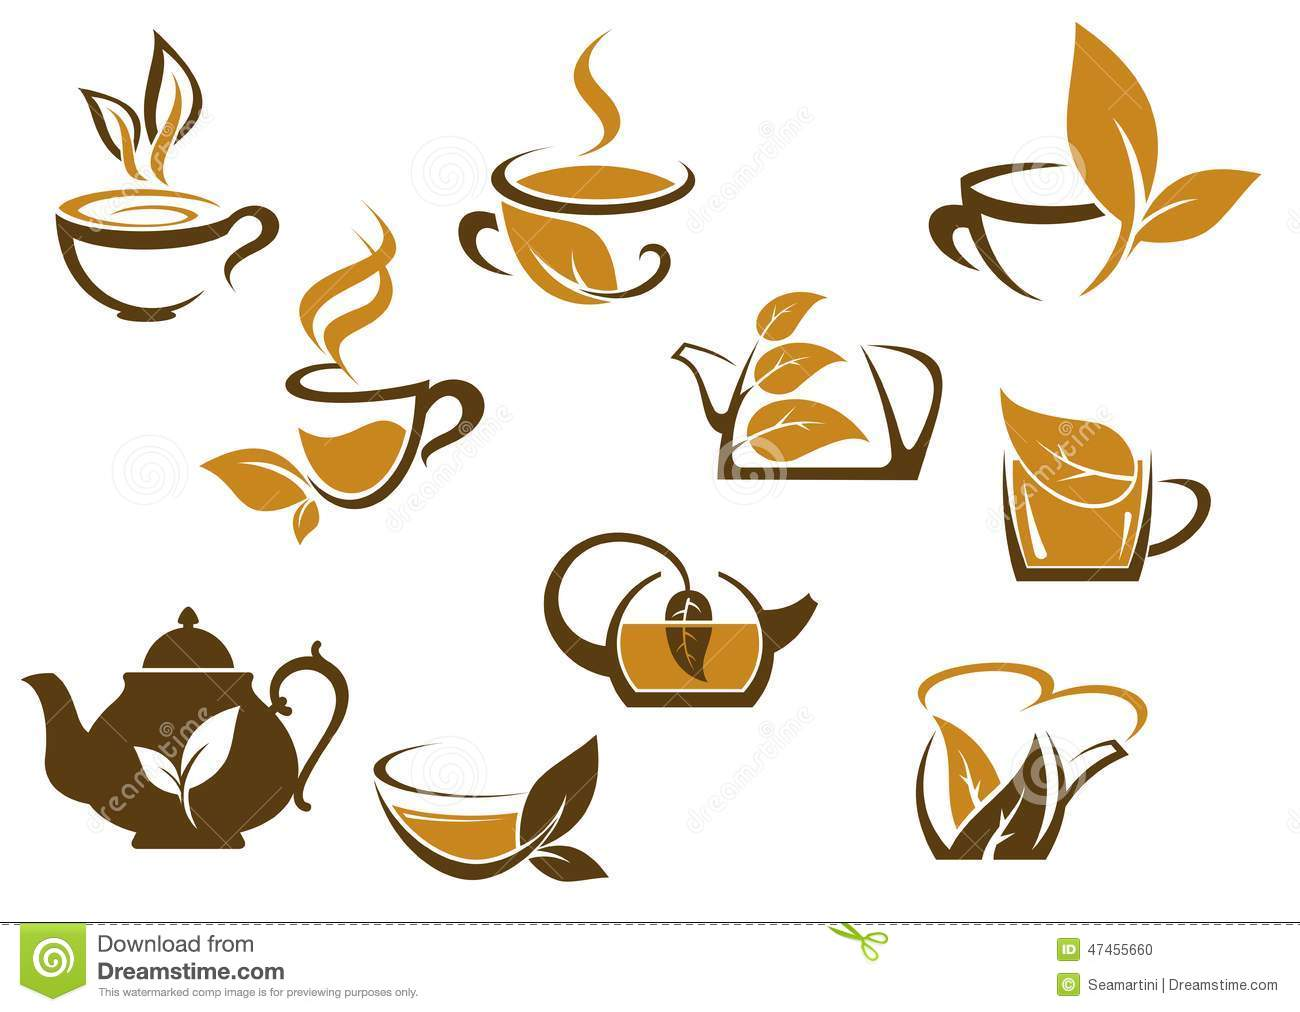 https://thumbs.dreamstime.com/z/set-organic-herbal-tea-icons-brown-white-vector-doodle-sketches-hot-steaming-cups-teapots-fresh-leaves-47455660.jpg